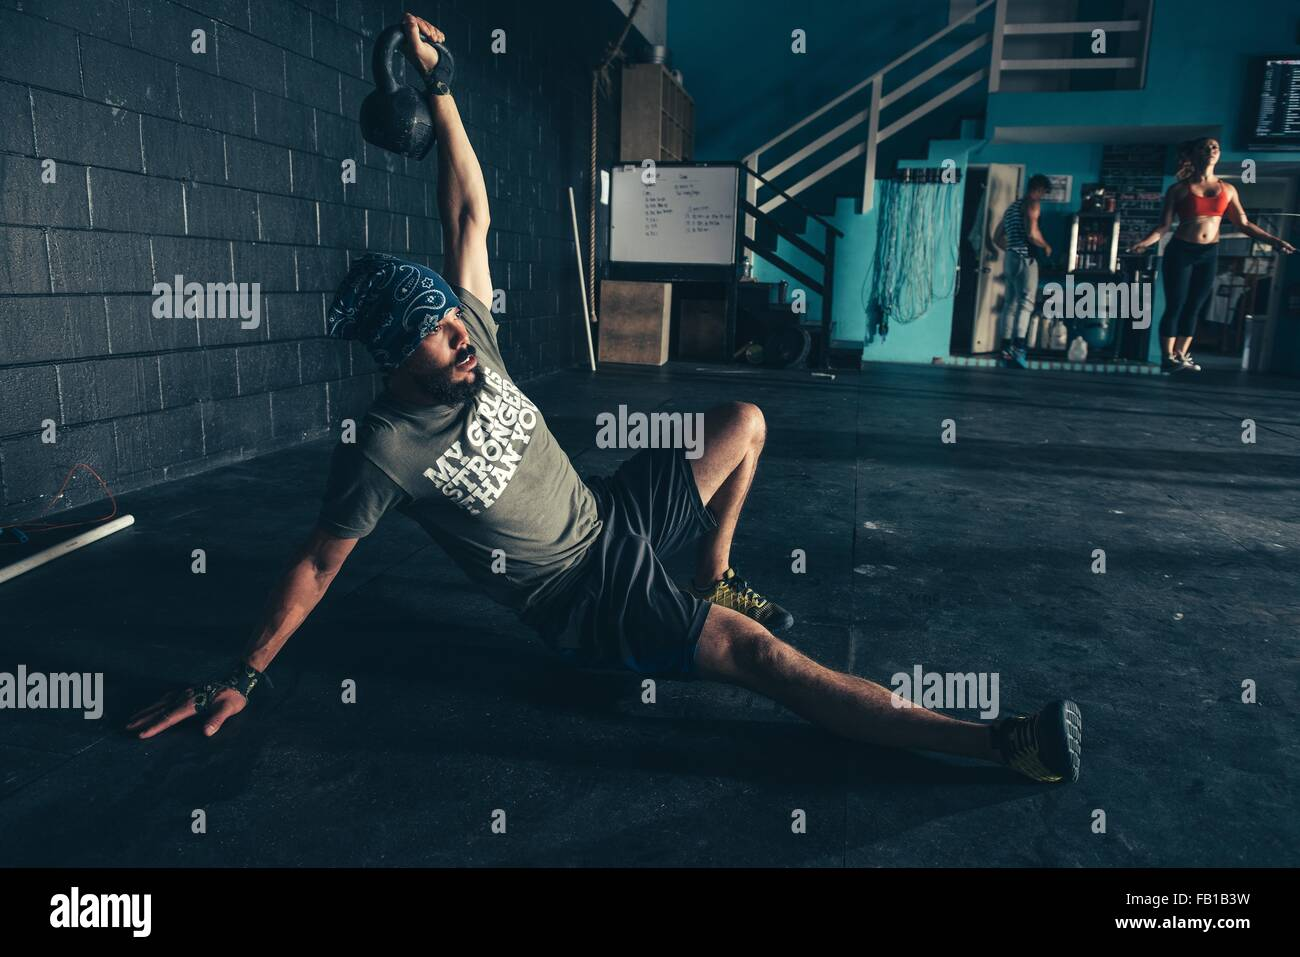 Man lifting kettlebell in  gym - Stock Image